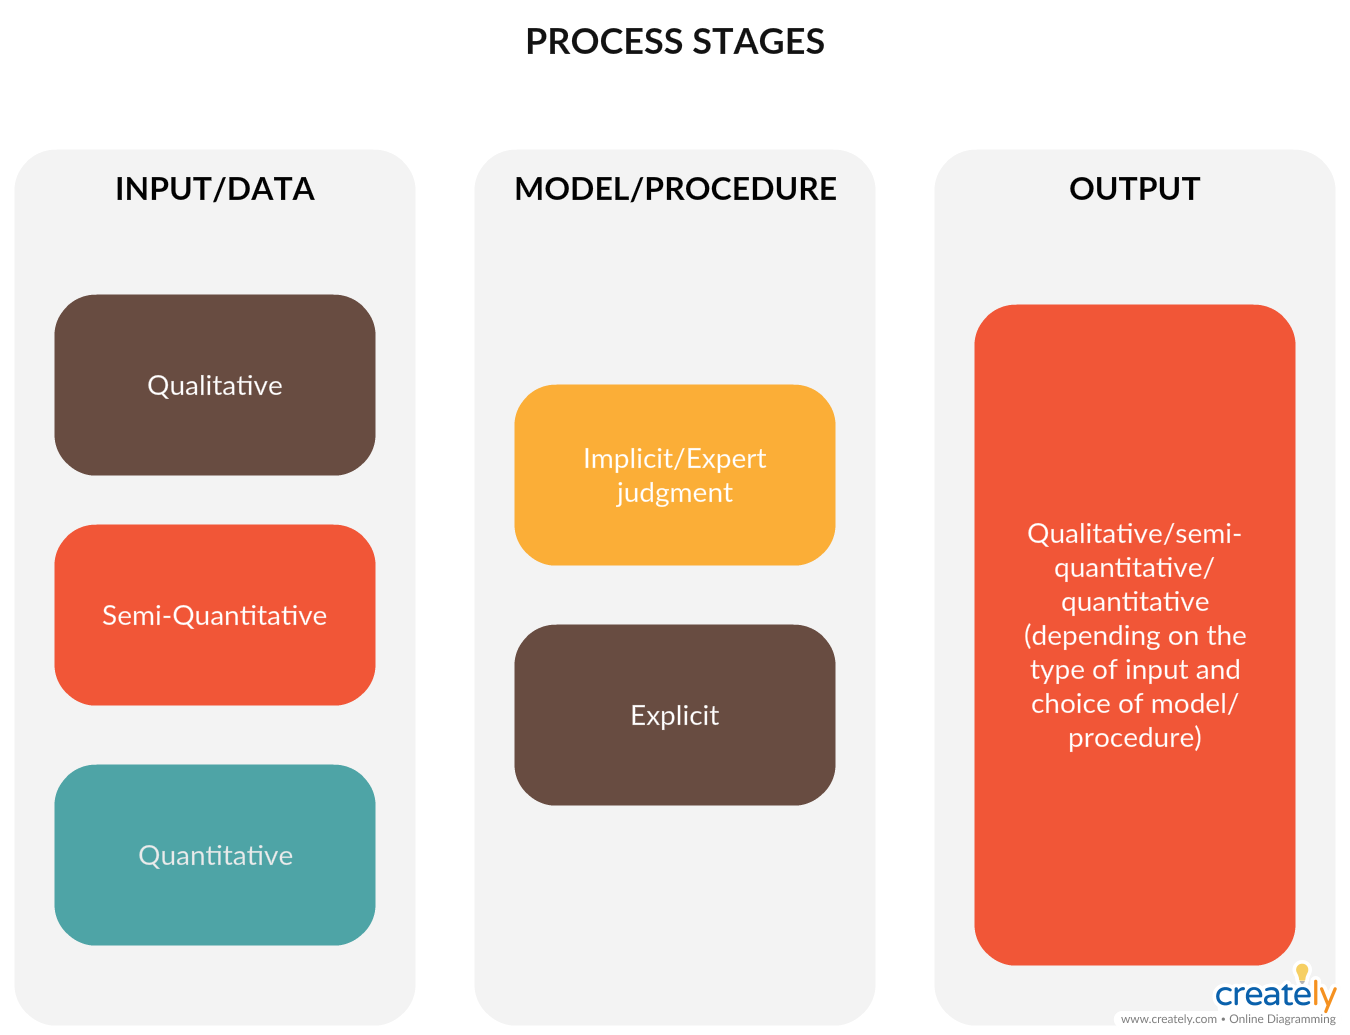 A Conceptual Framework Is An Analytical Tool With Several